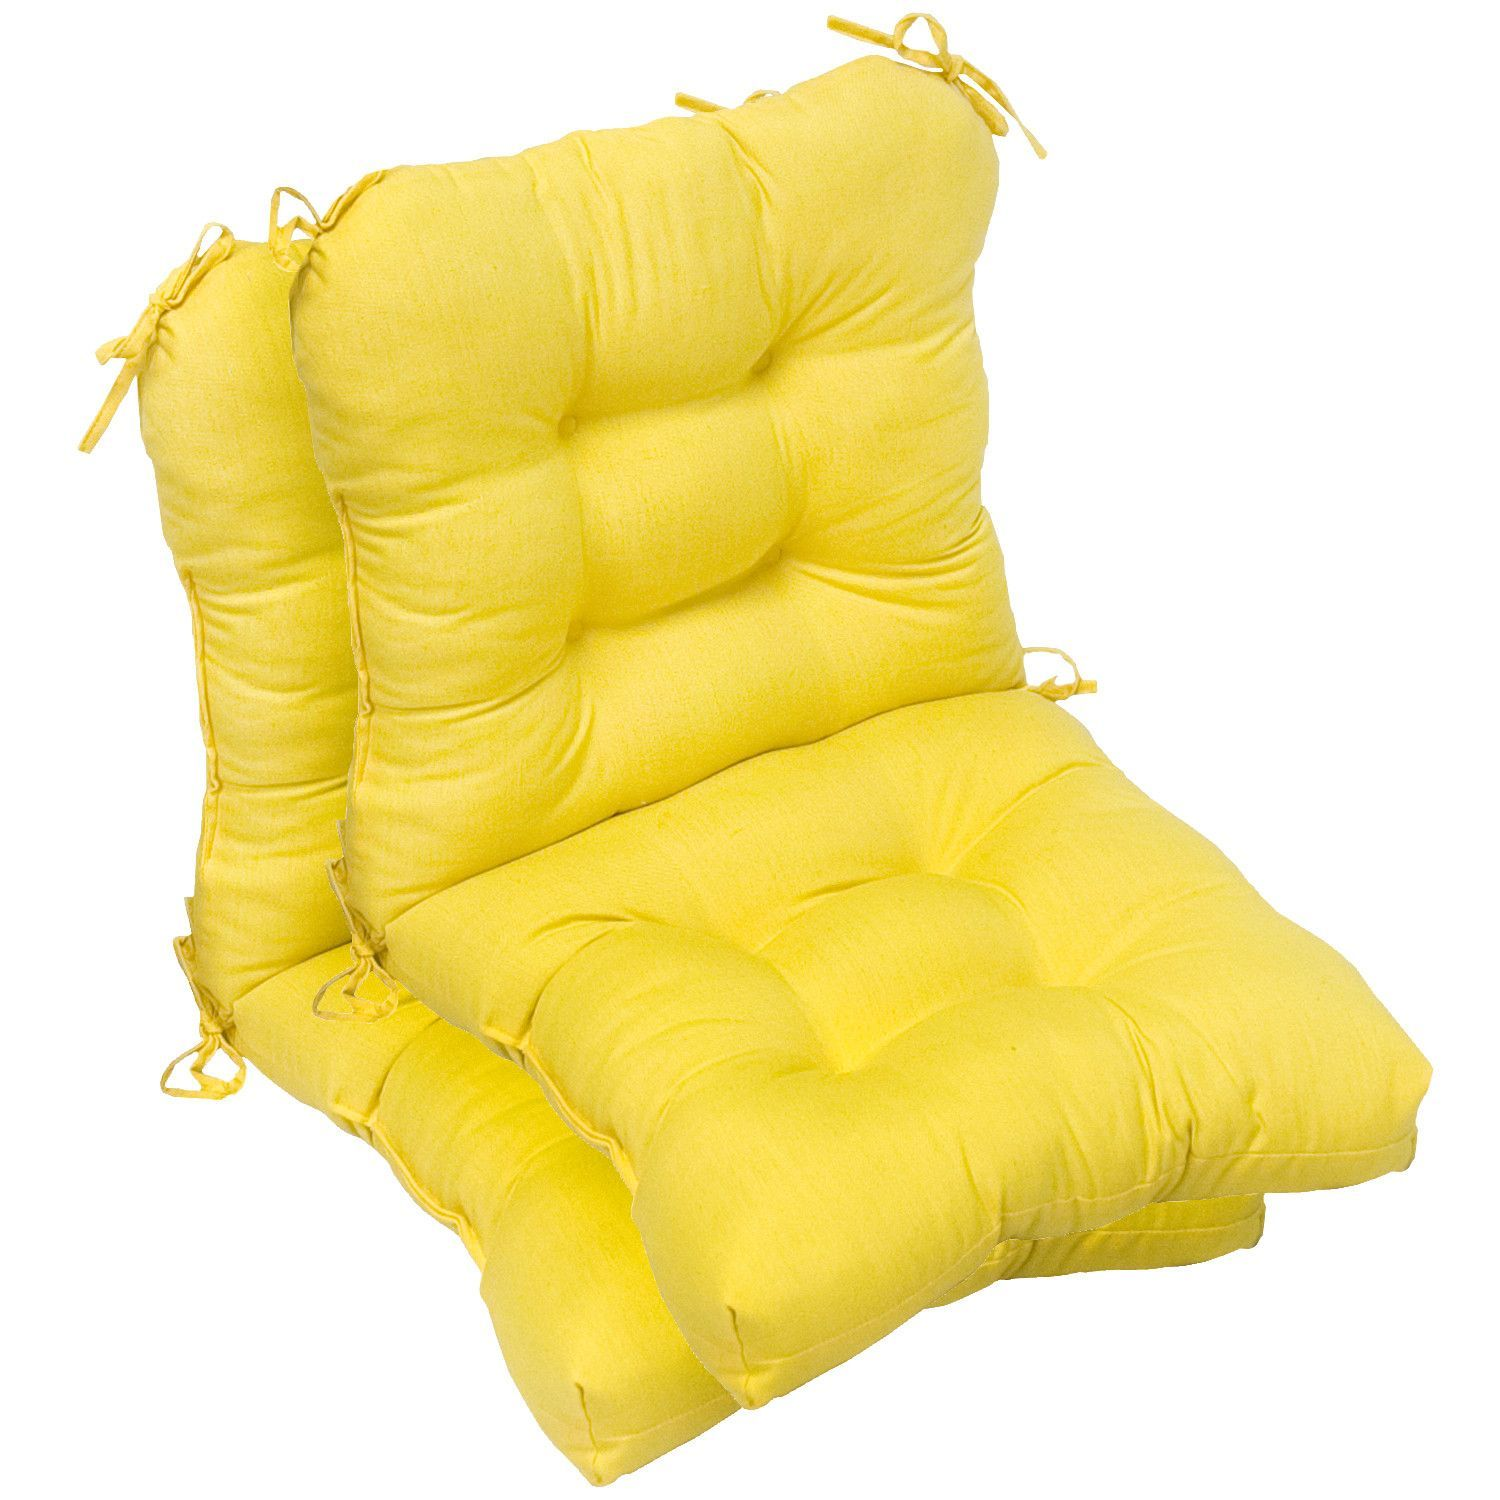 Outdoor chair cushion set of outdoor chair cushions and products